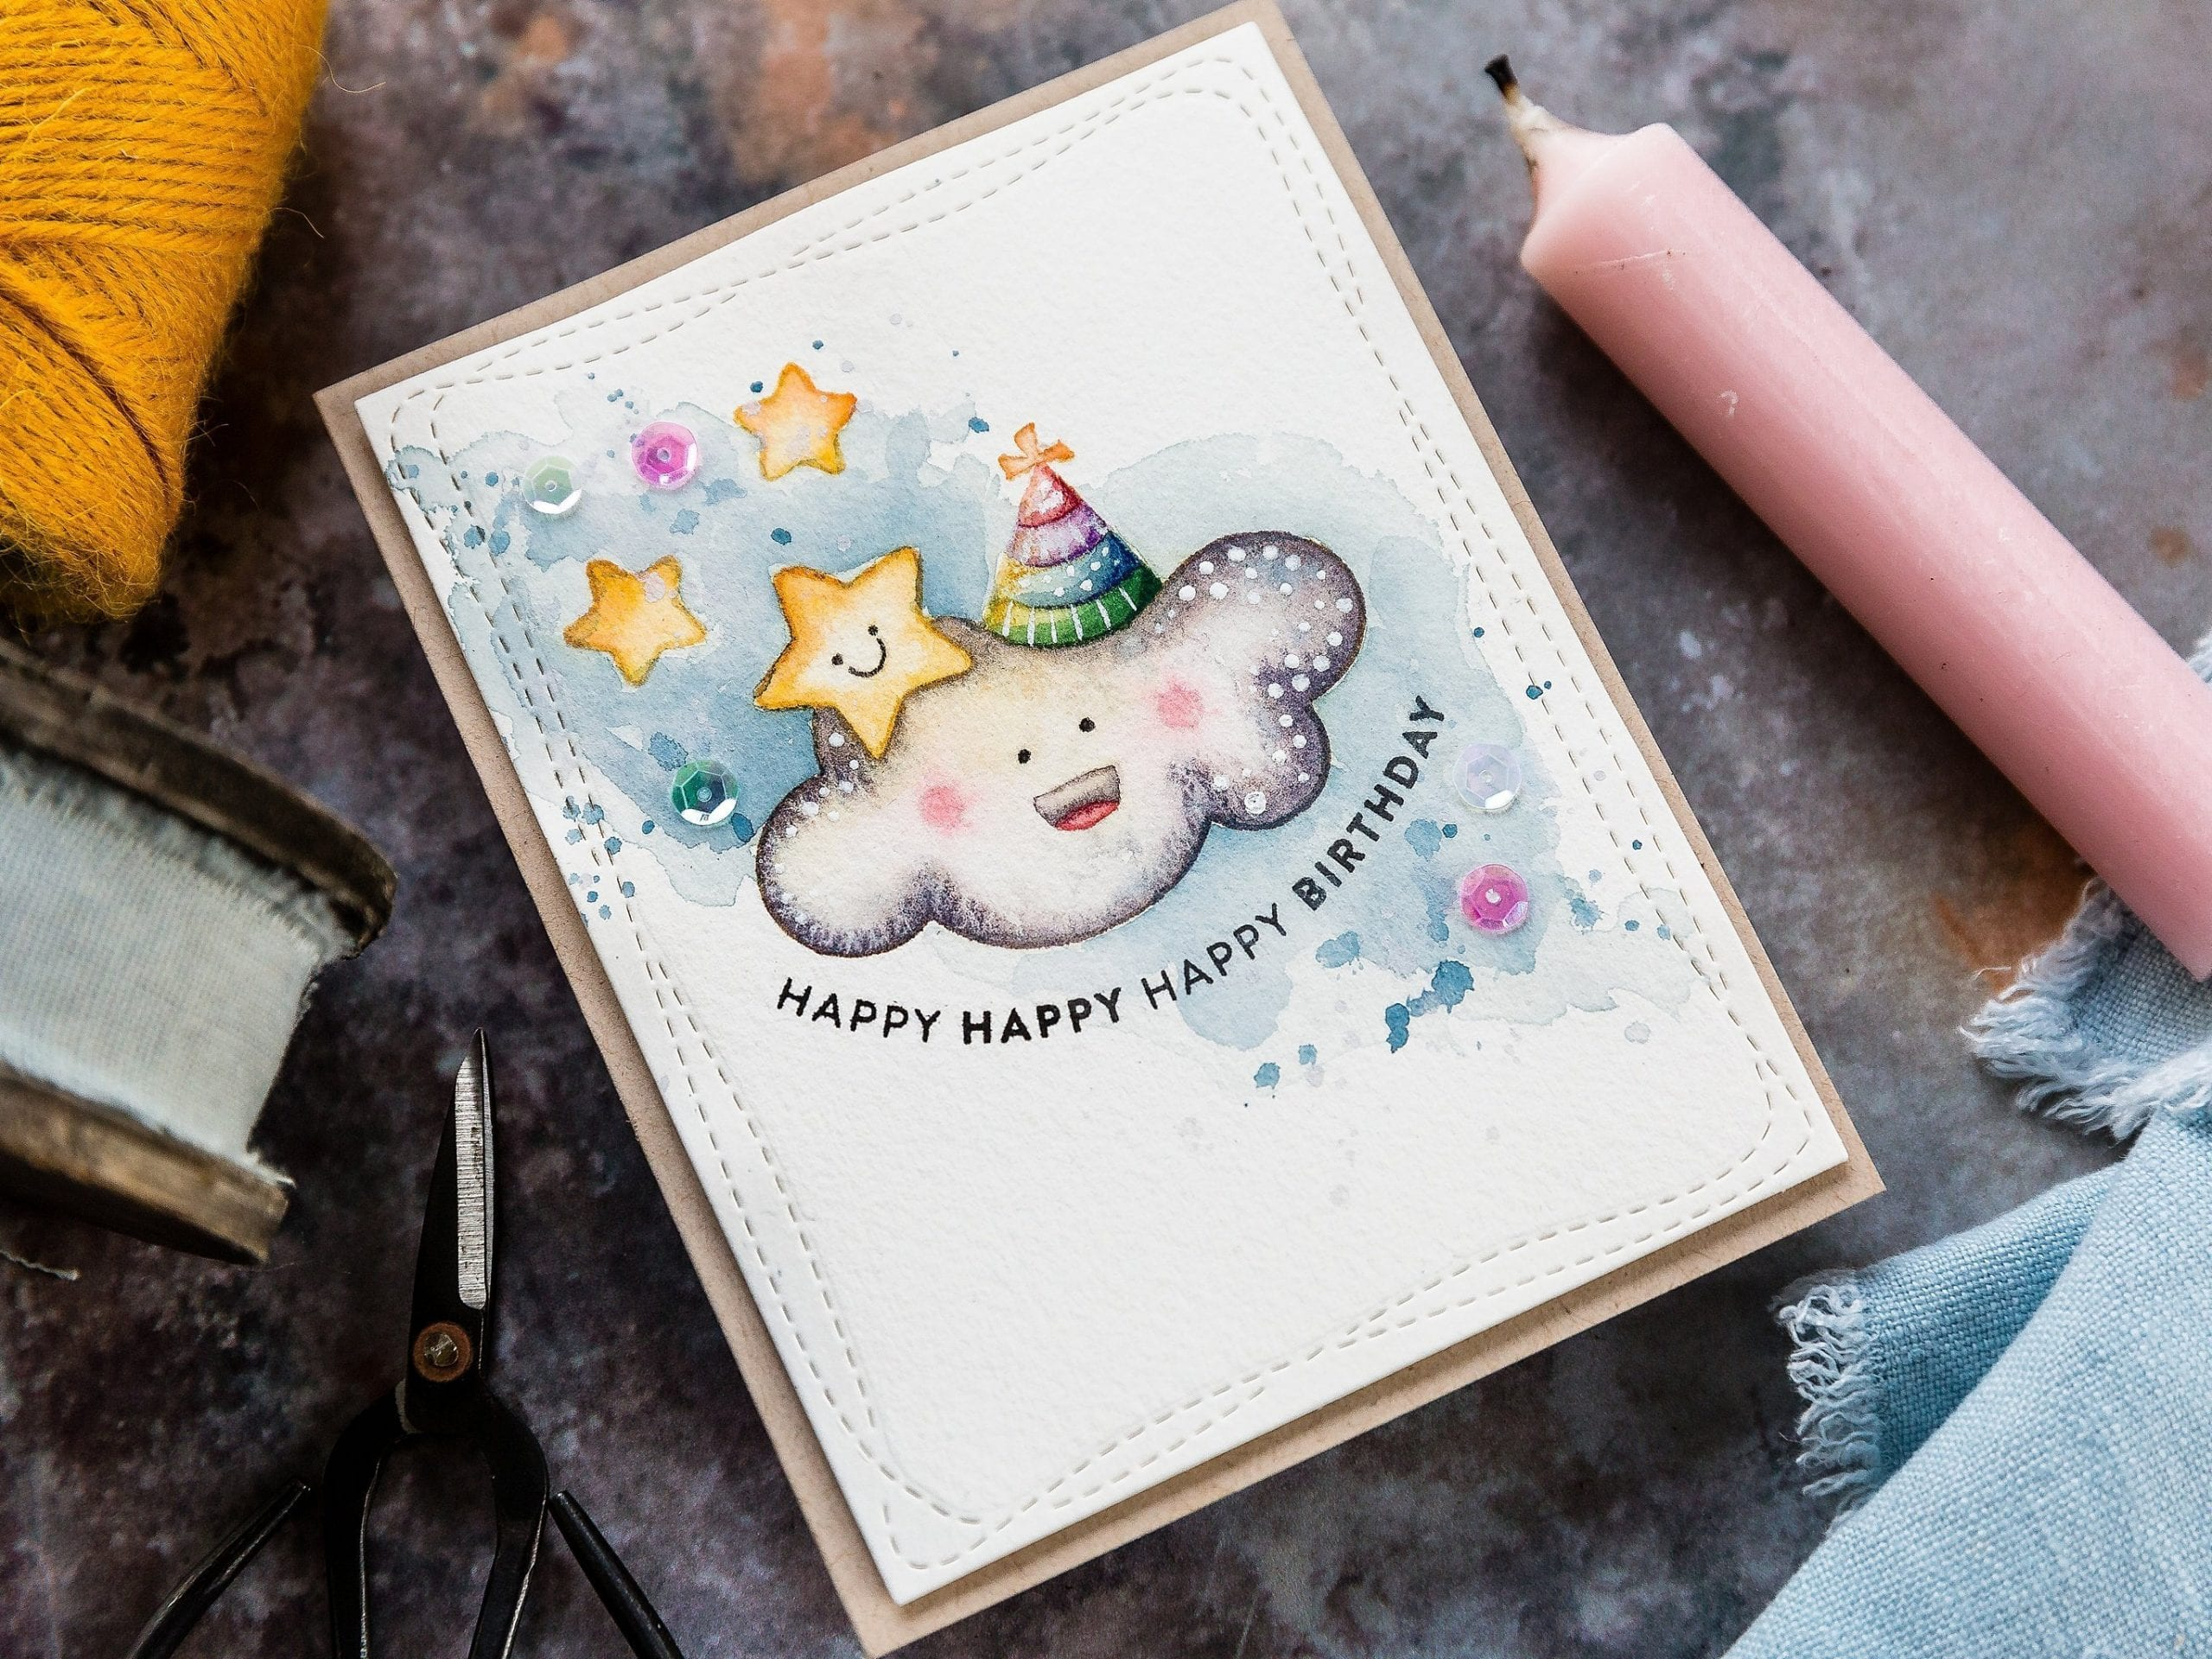 Watercoloured birthday card by Debby Hughes using the Limited Edition Birthday Card Kit from Simon Says Stamp. Find out more here: https://limedoodledesign.com/2019/09/limited-edition-stamptember-birthday-card-kit/